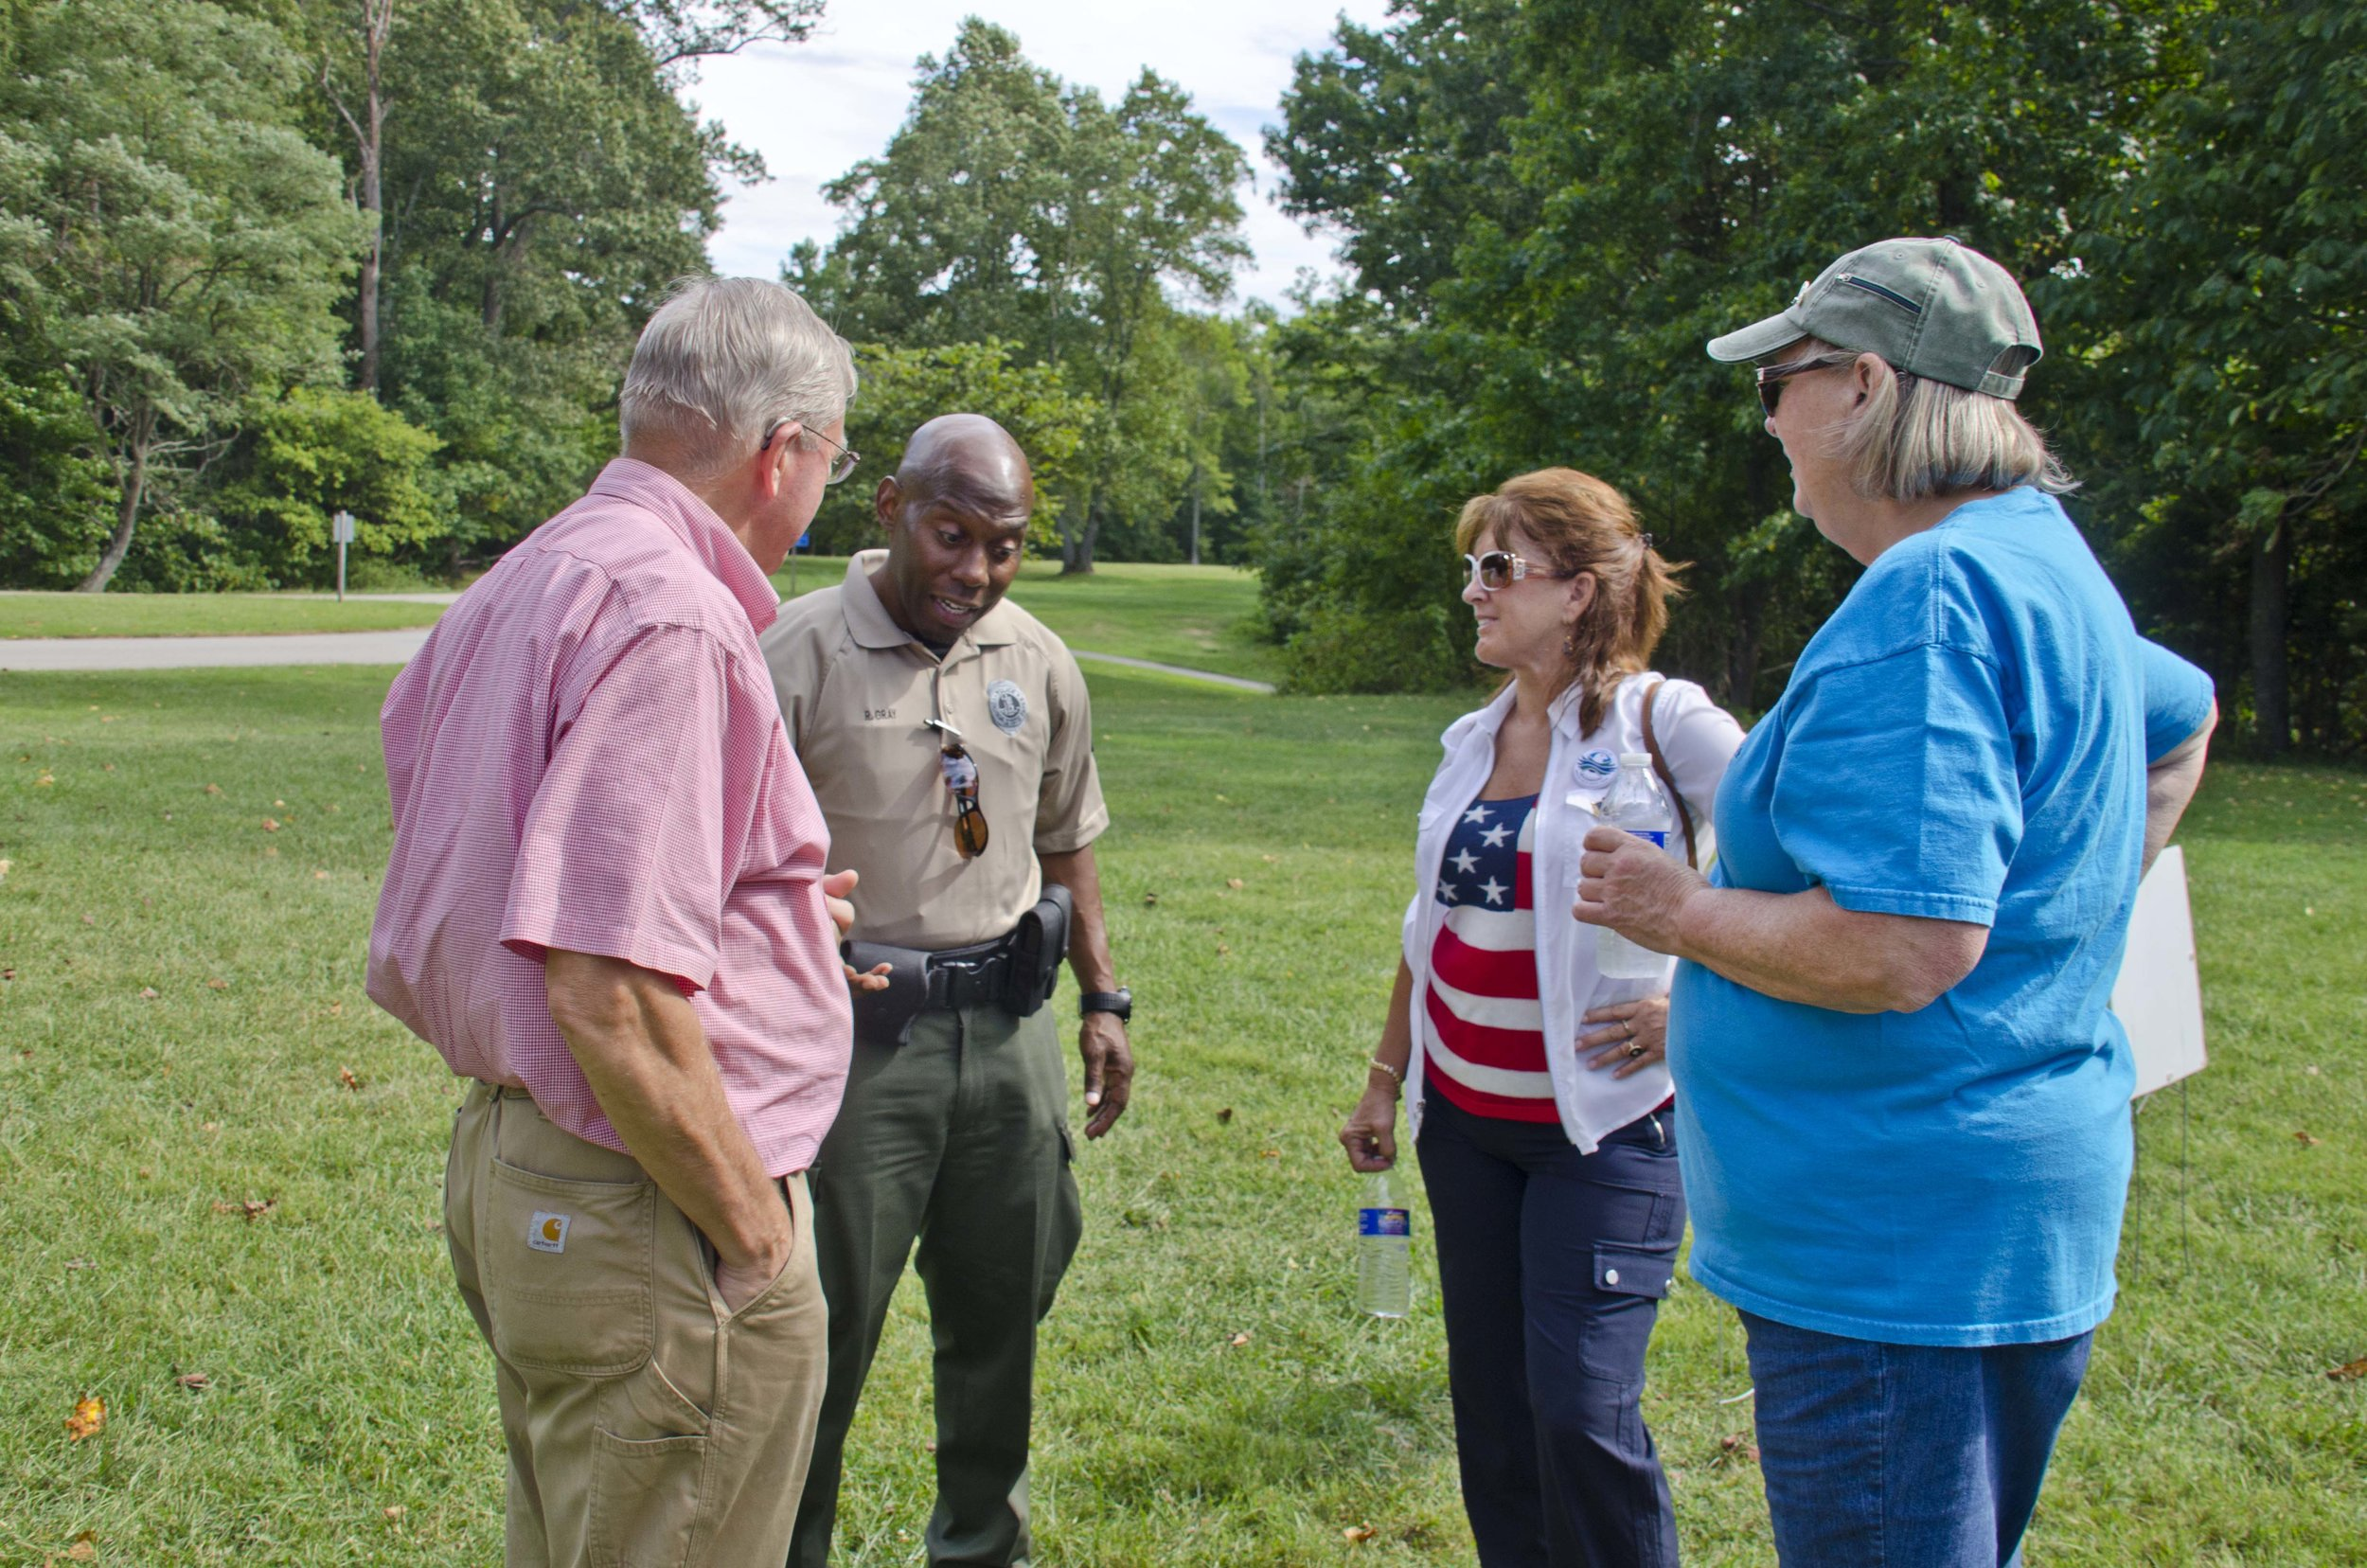 Firends of Mason Neck State Park and Reinhardt Gray at the Audubon - Friends Meeting - Photo by Tom Blackburn